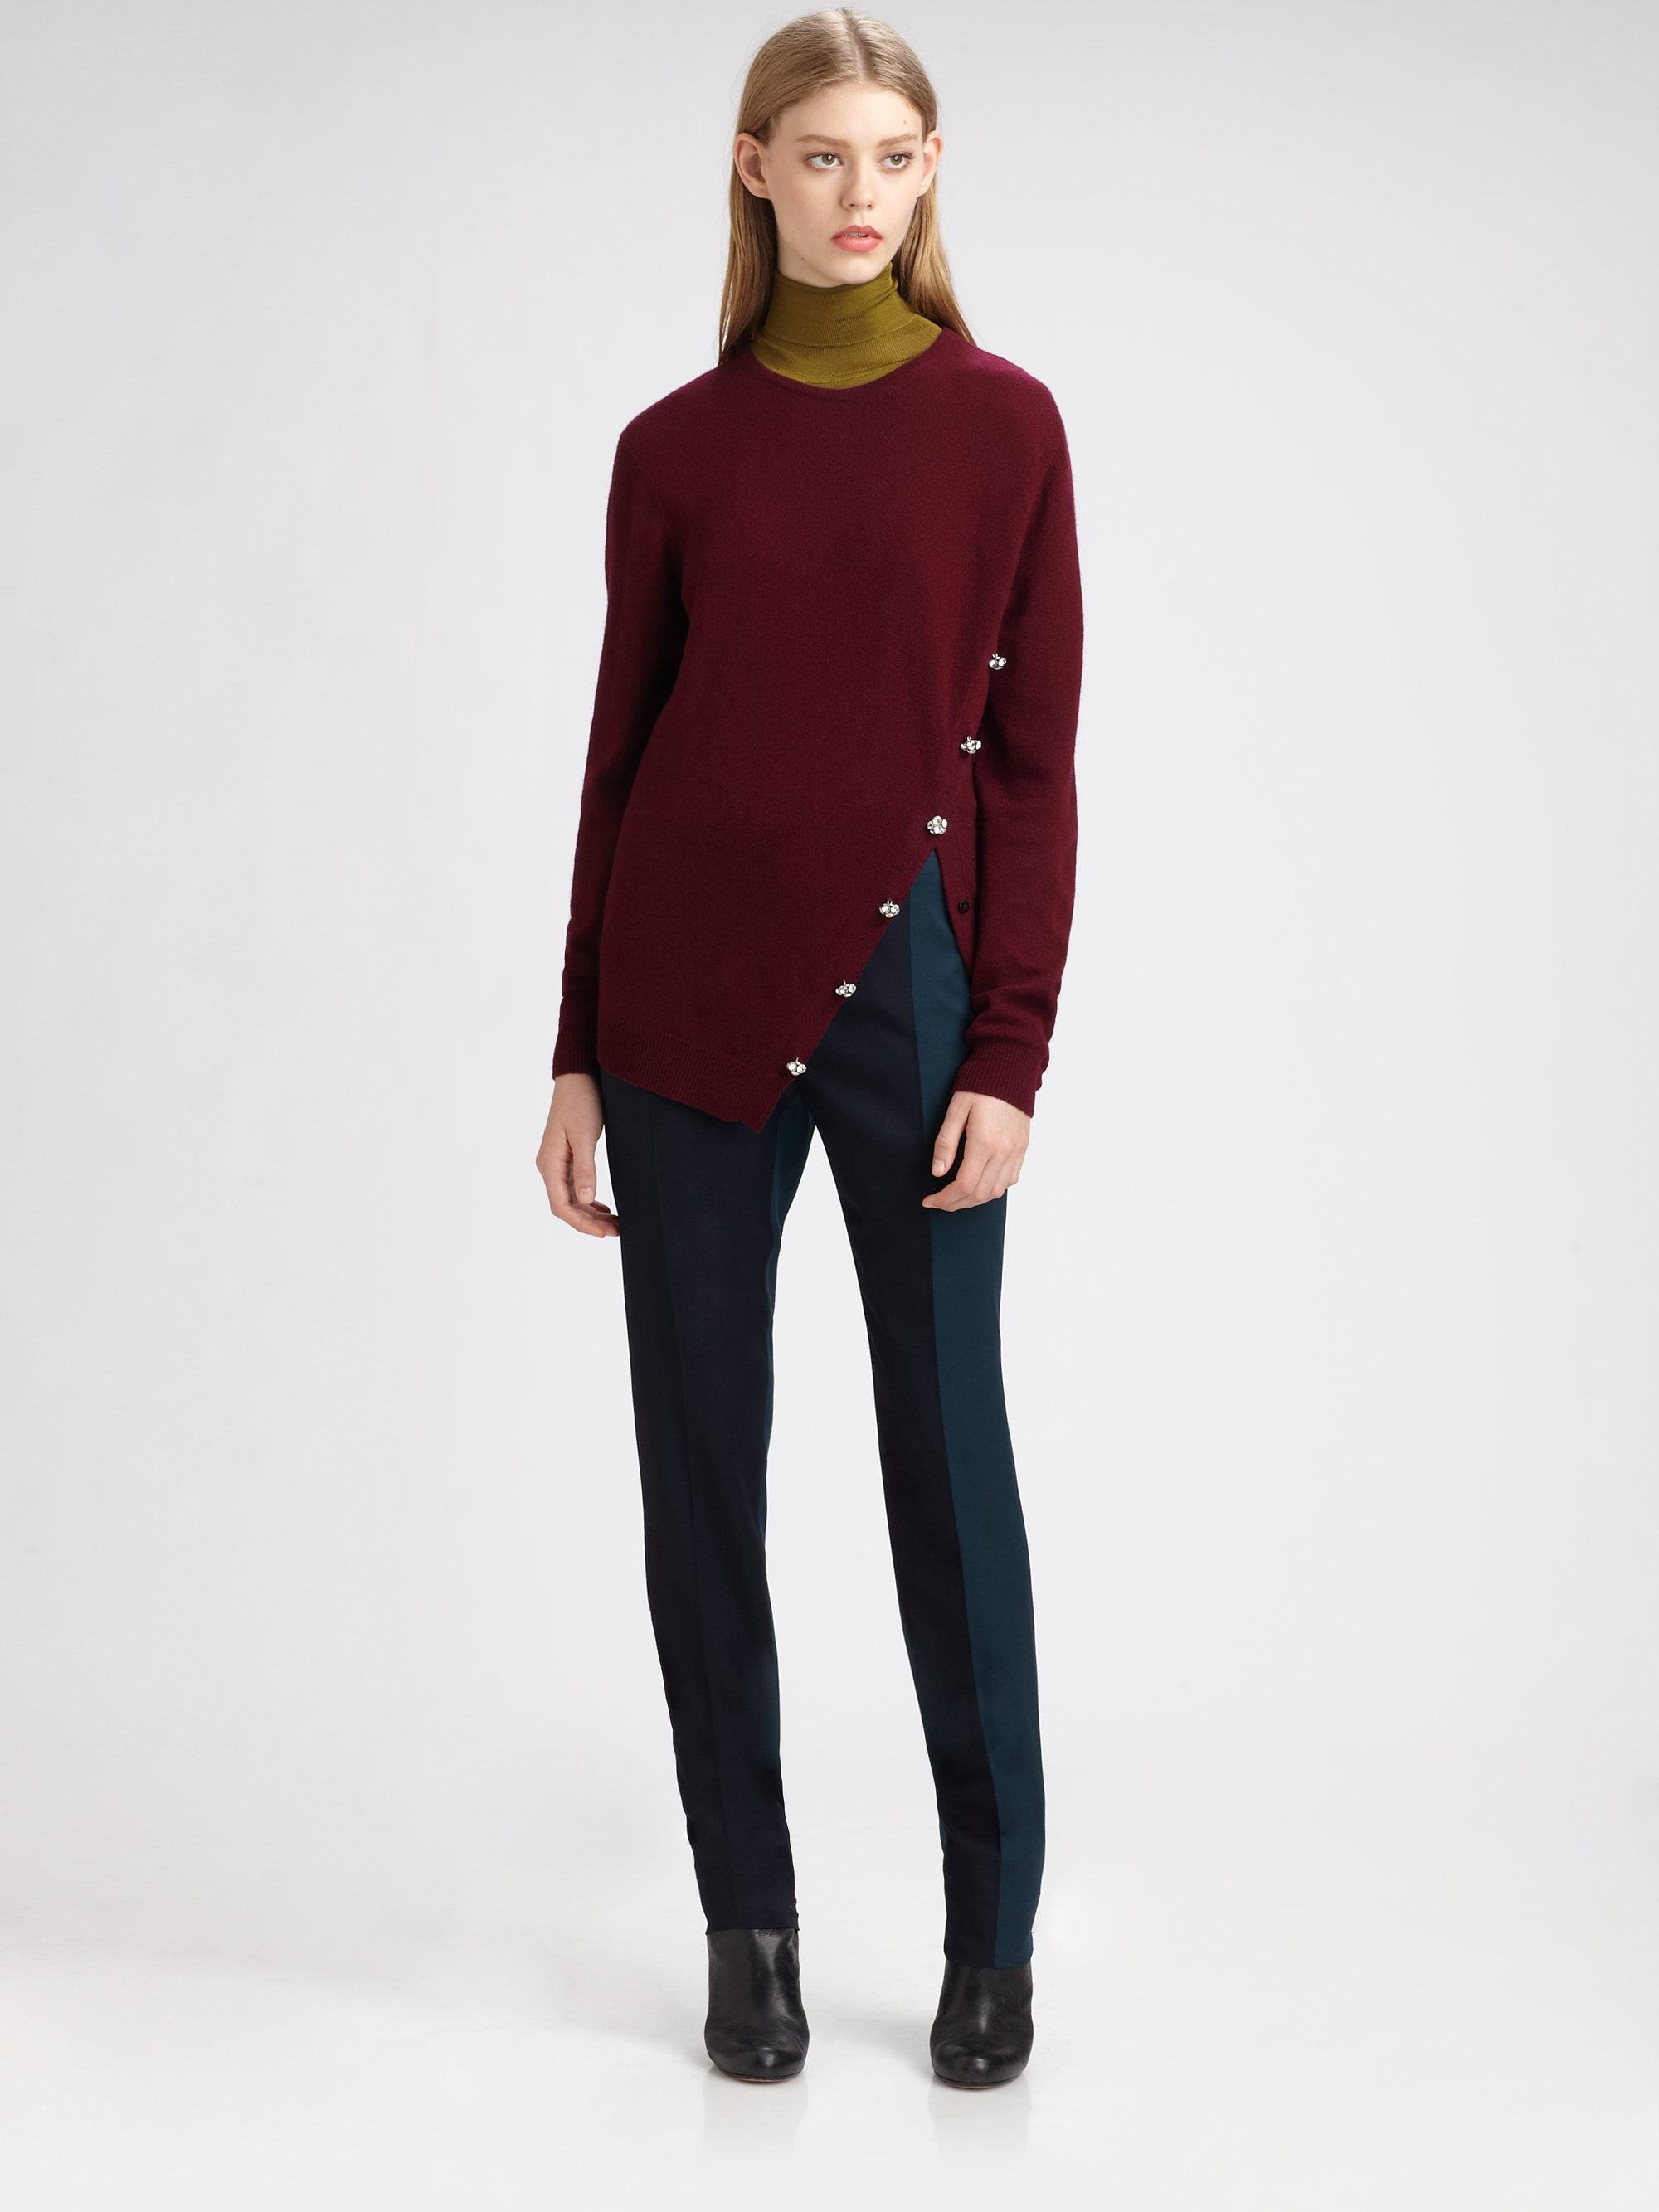 Pringle of scotland Cashmere Sweater in Red | Lyst